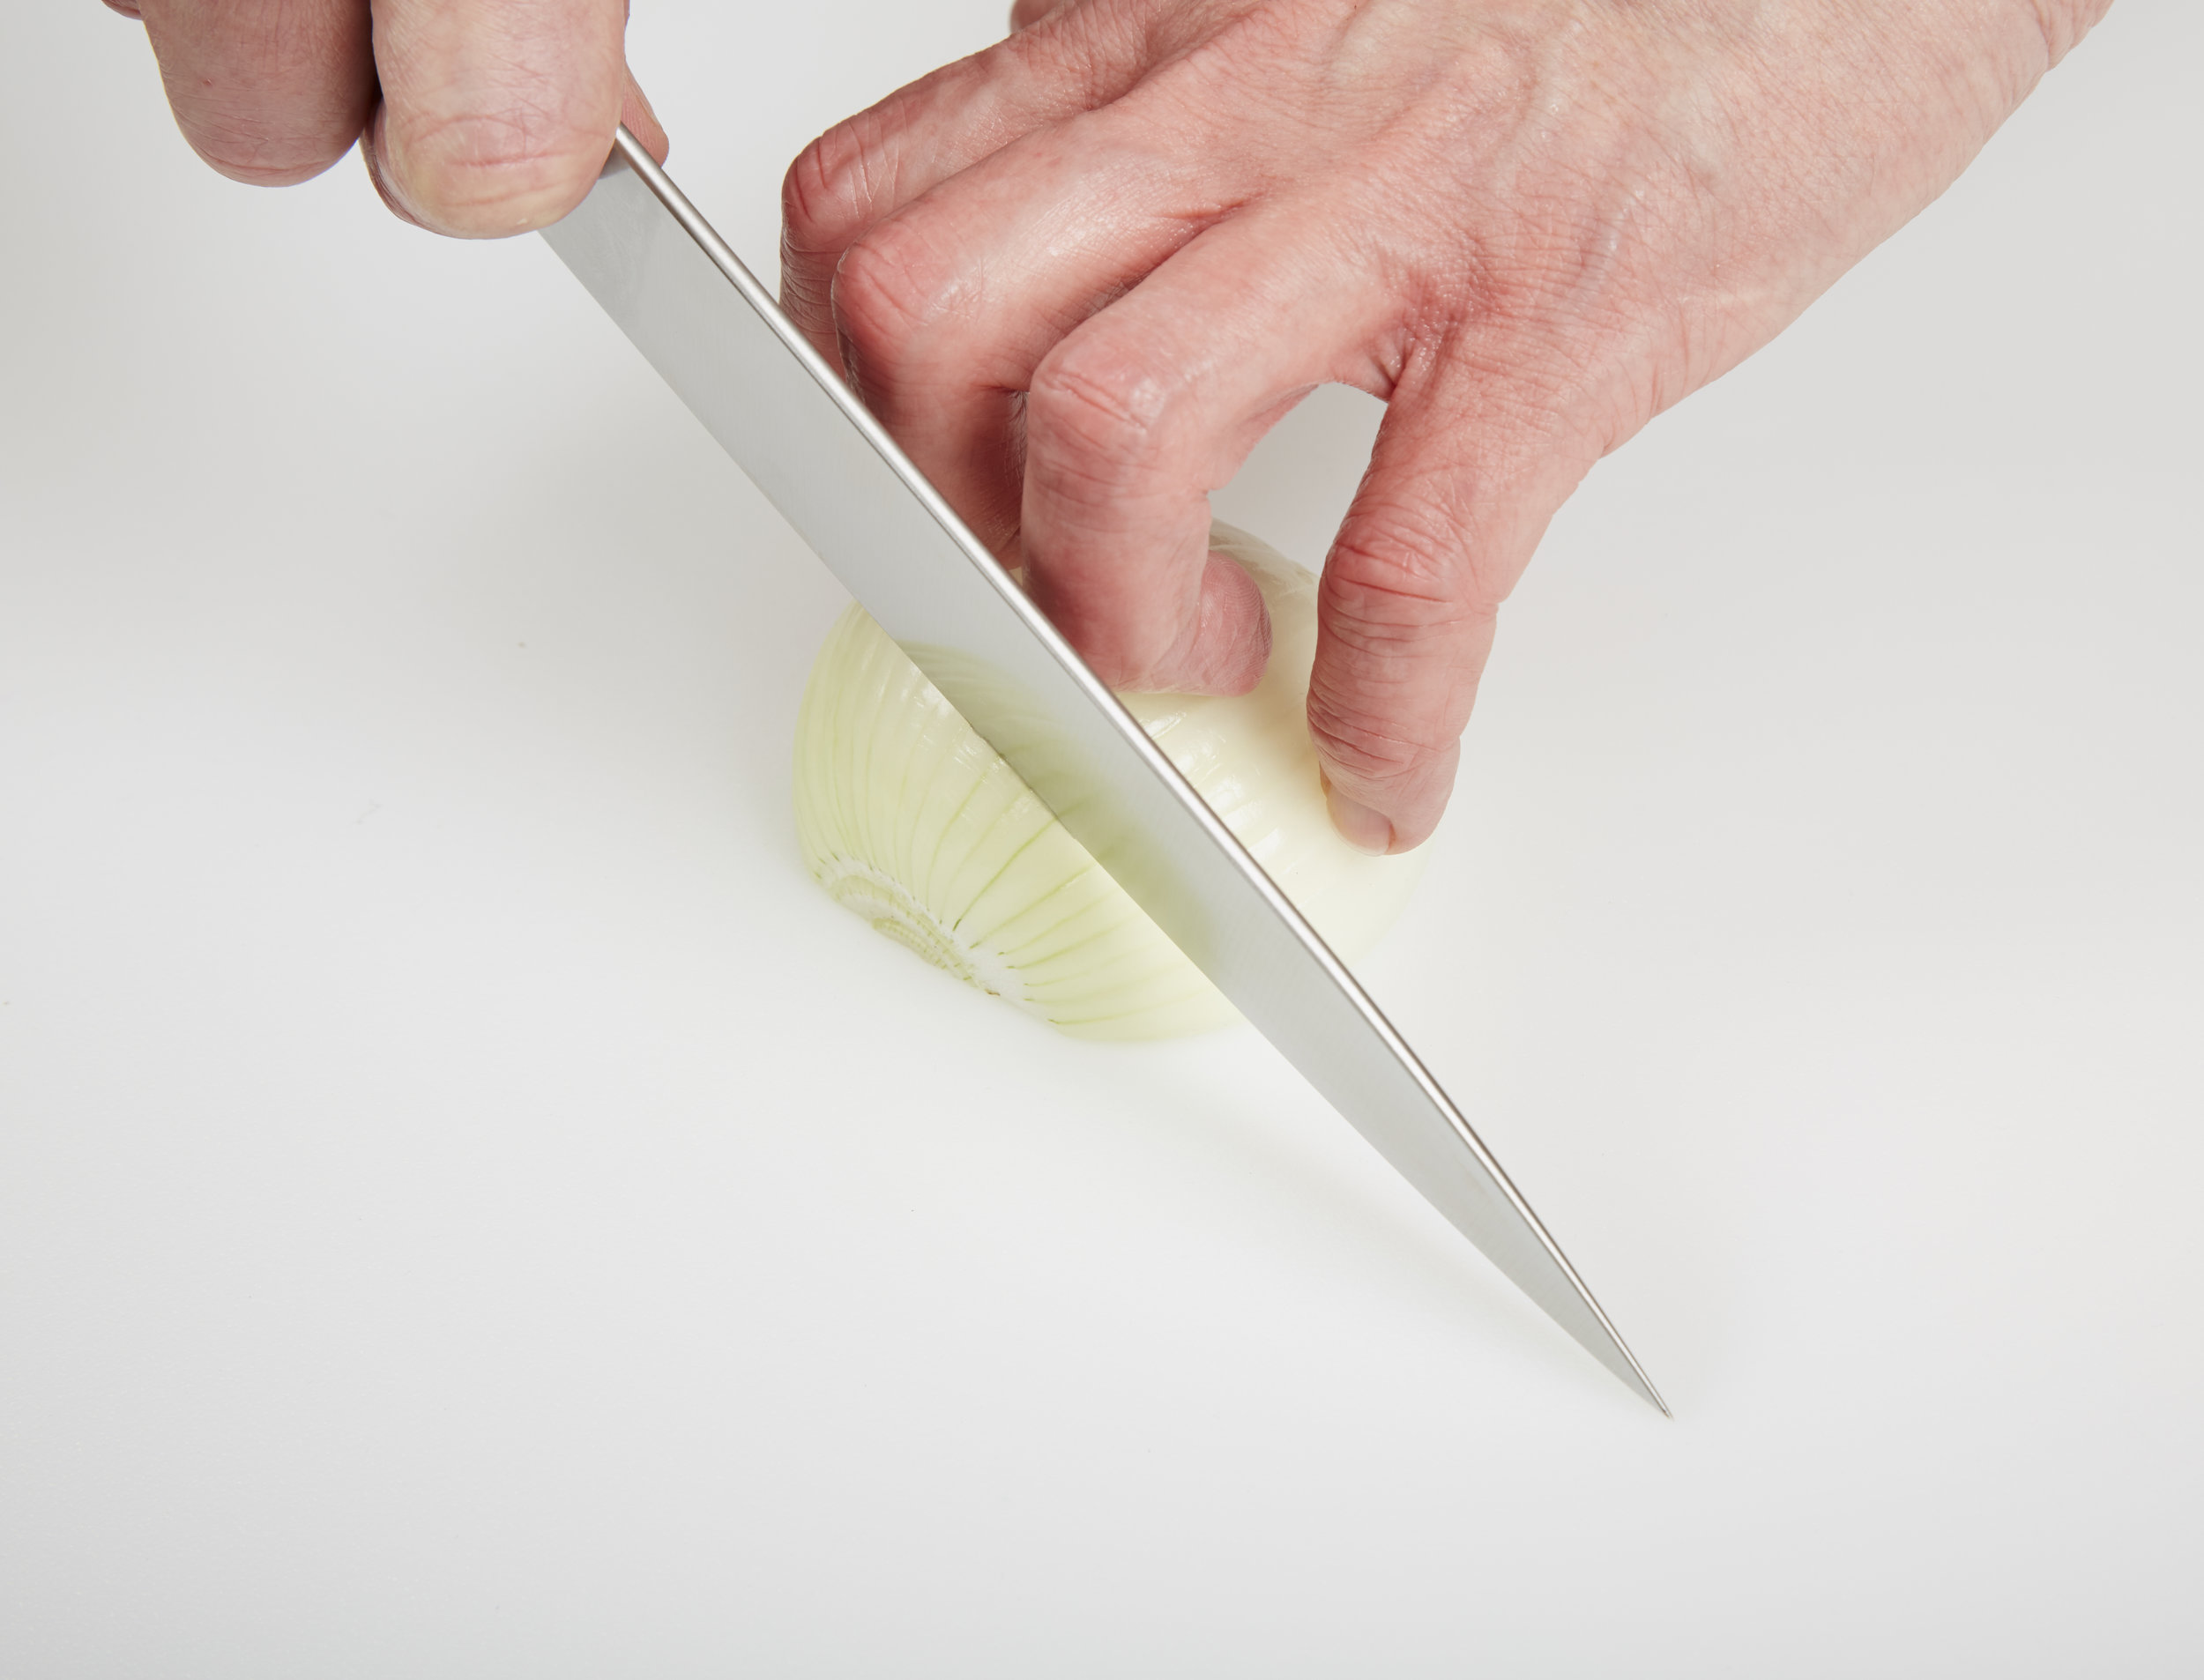 Click Here to Learn More About Knife Skills